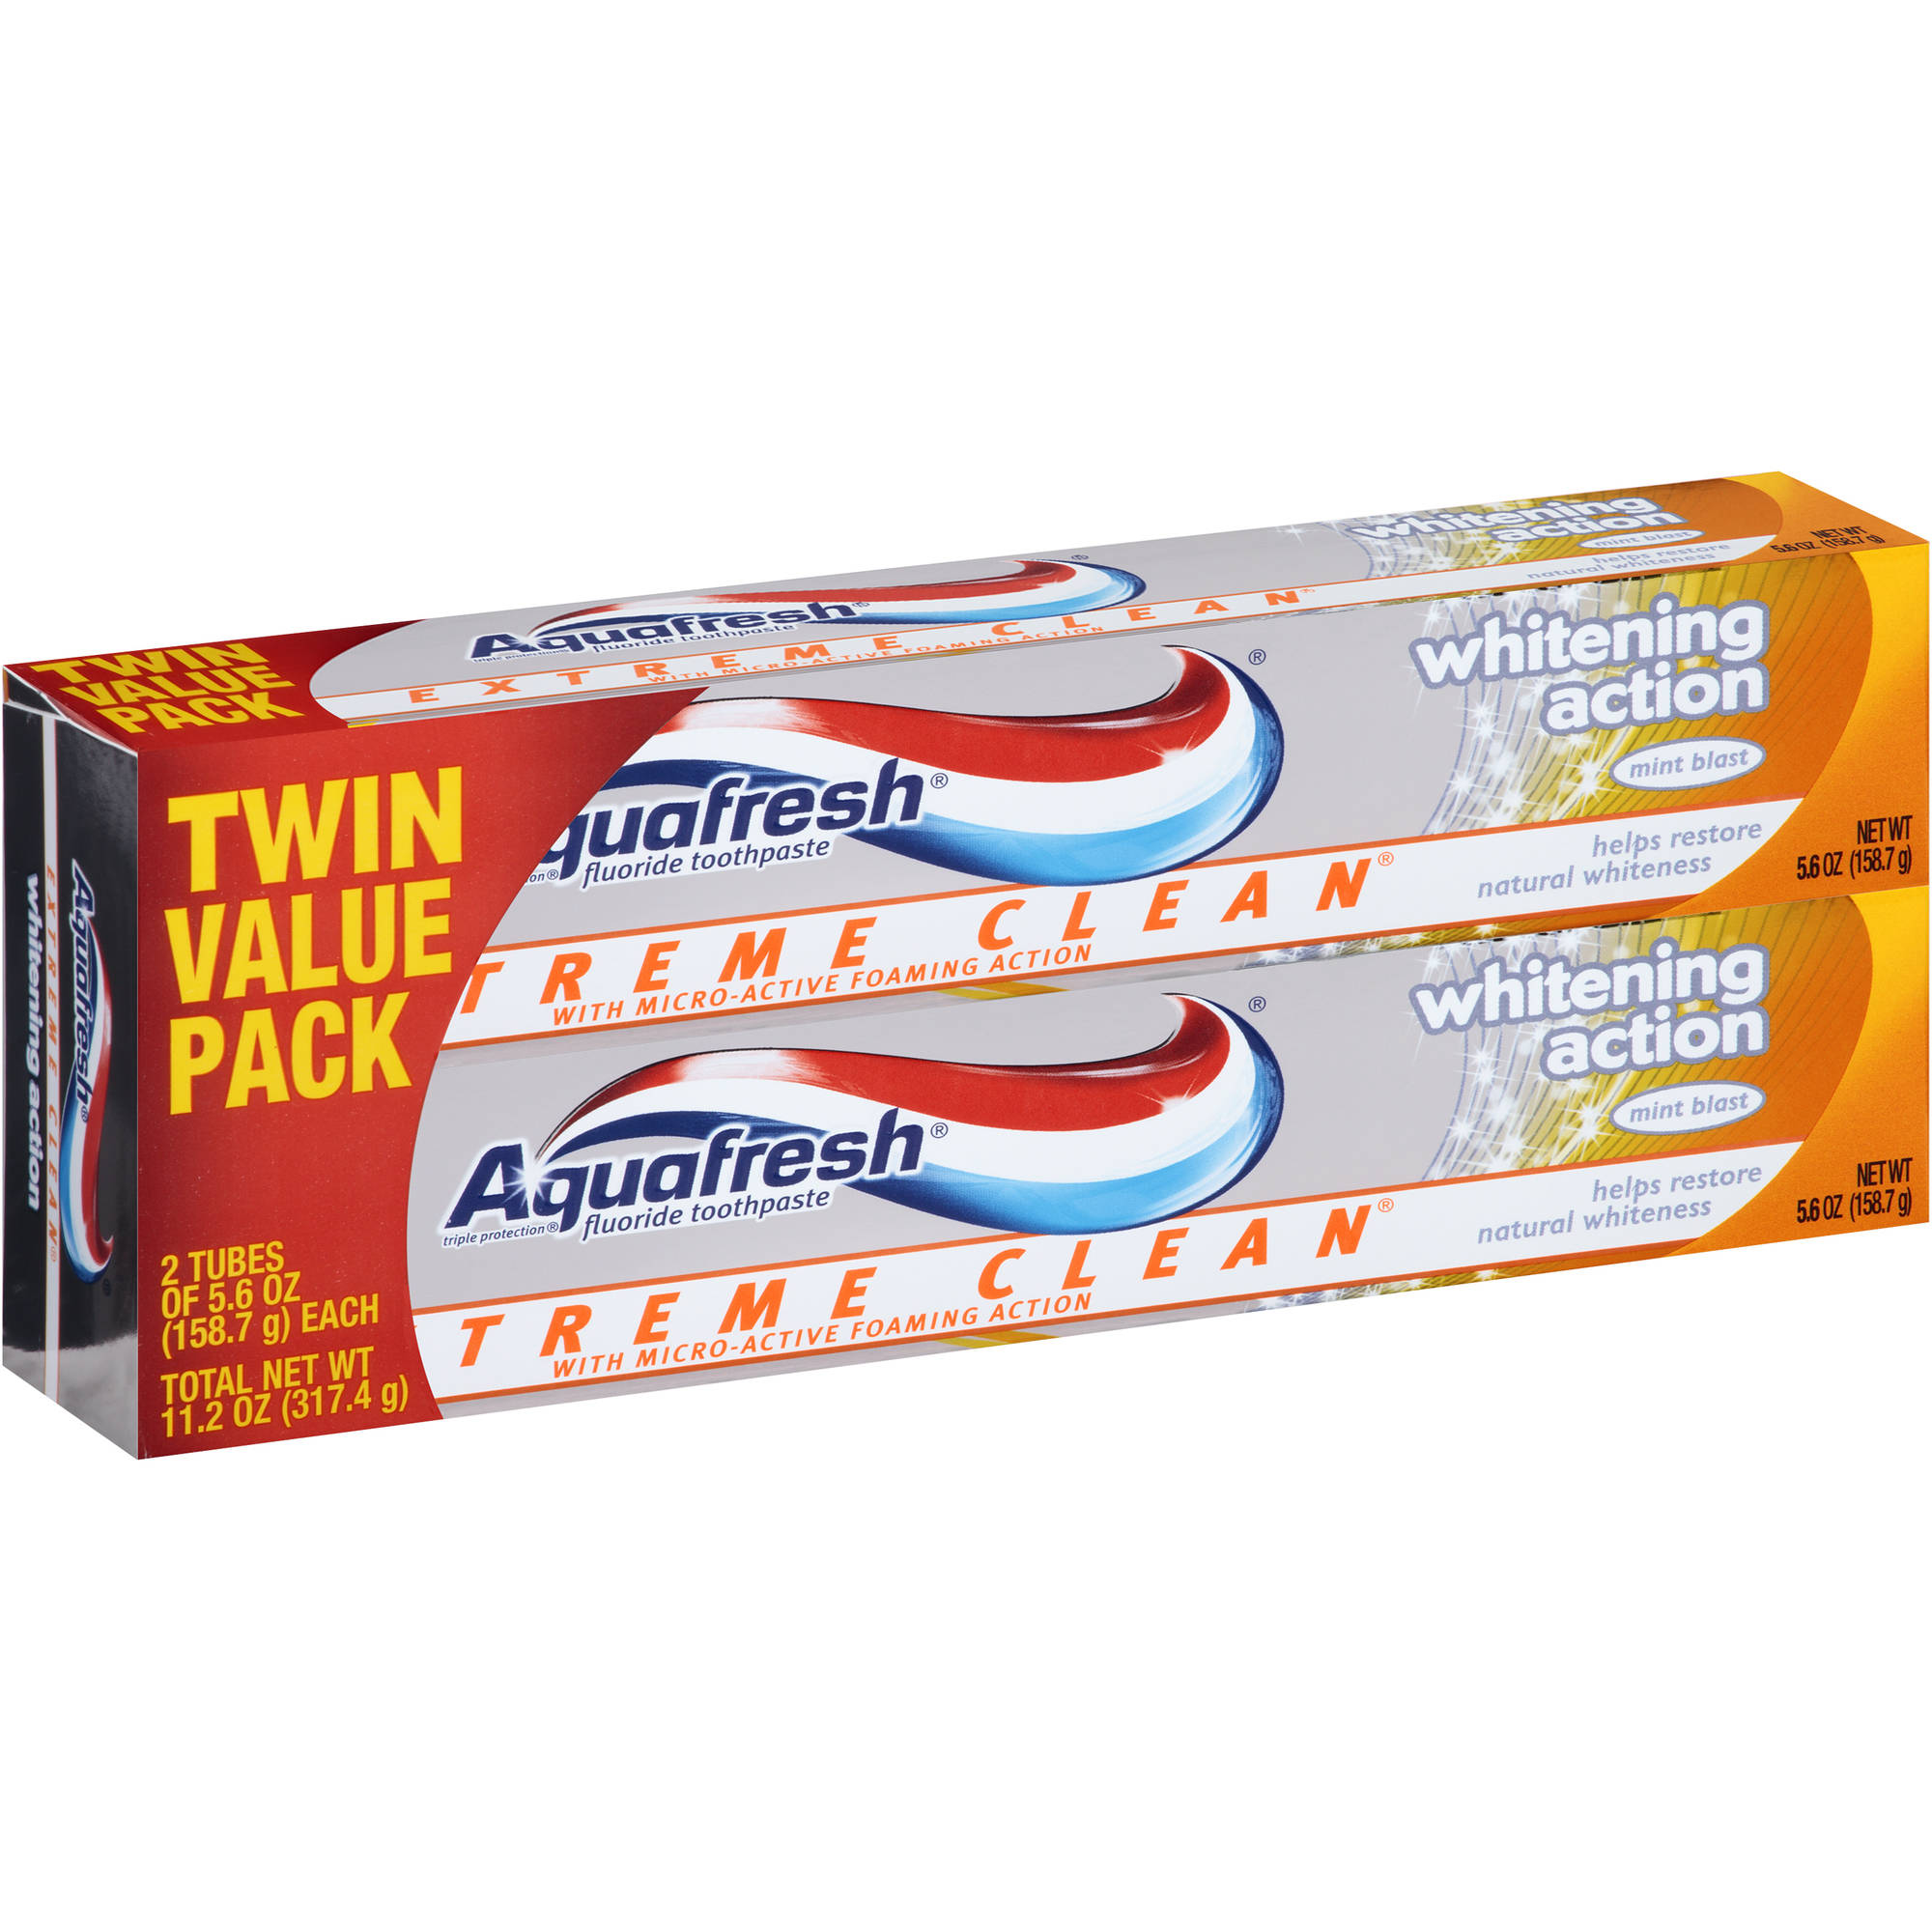 Aquafresh Extreme Clean Whitening Action Twin Pack Toothpaste, 5.6 oz